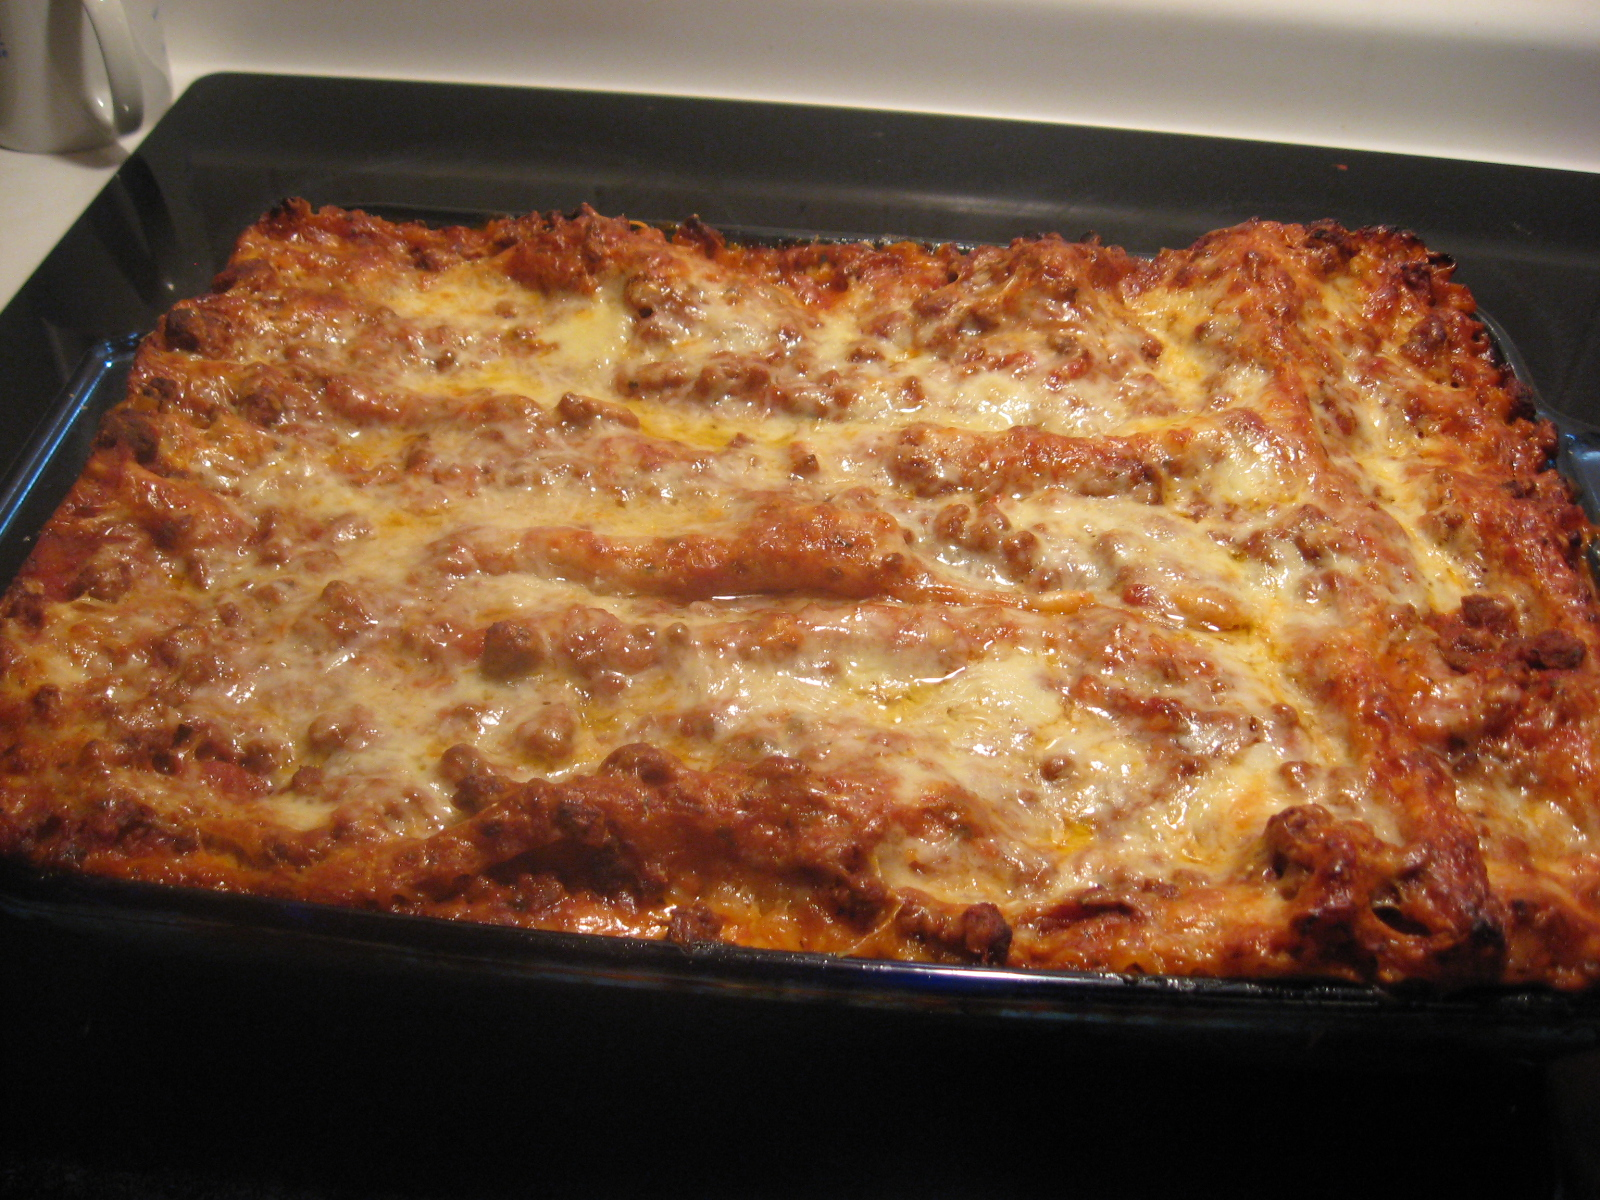 CleanLiving / DirtyWorld: My Mom Makes the Best Lasagna!